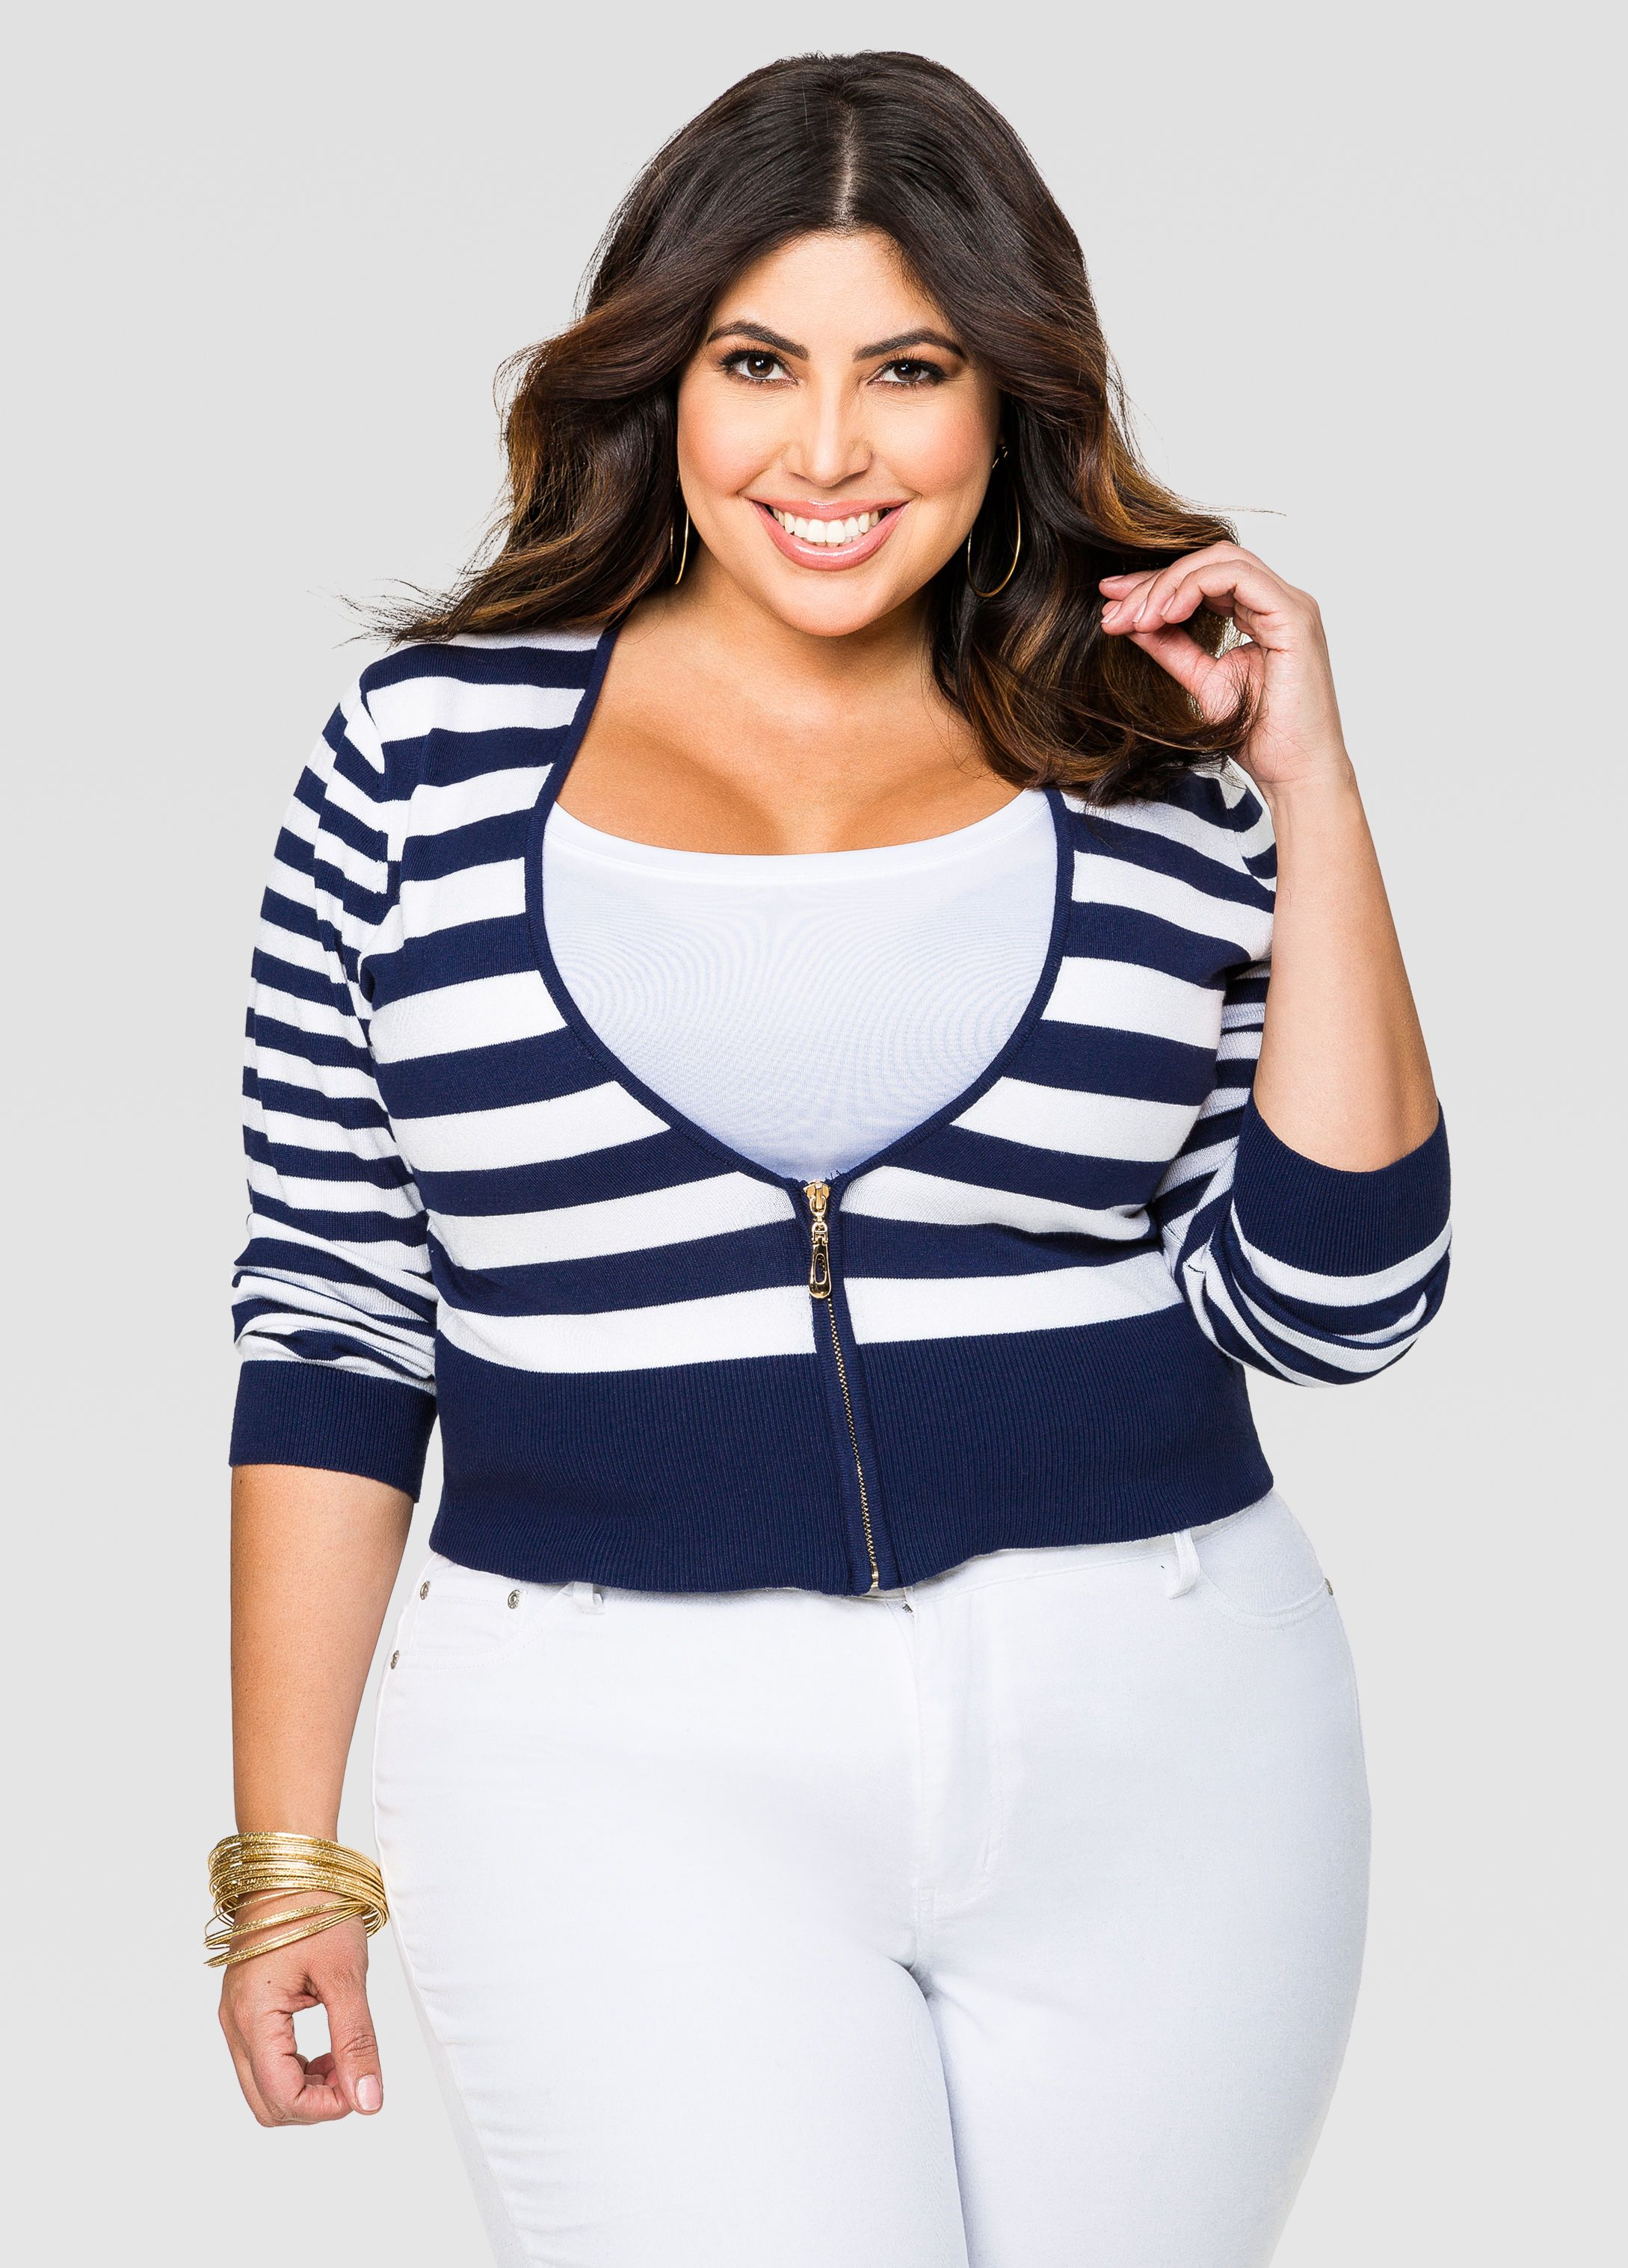 bb429b57ae Striped Cropped Zip Front Cardigan - Ashley Stewart. Striped Cropped Zip  Front Cardigan - Ashley Stewart Fashionable Plus Size Clothing ...